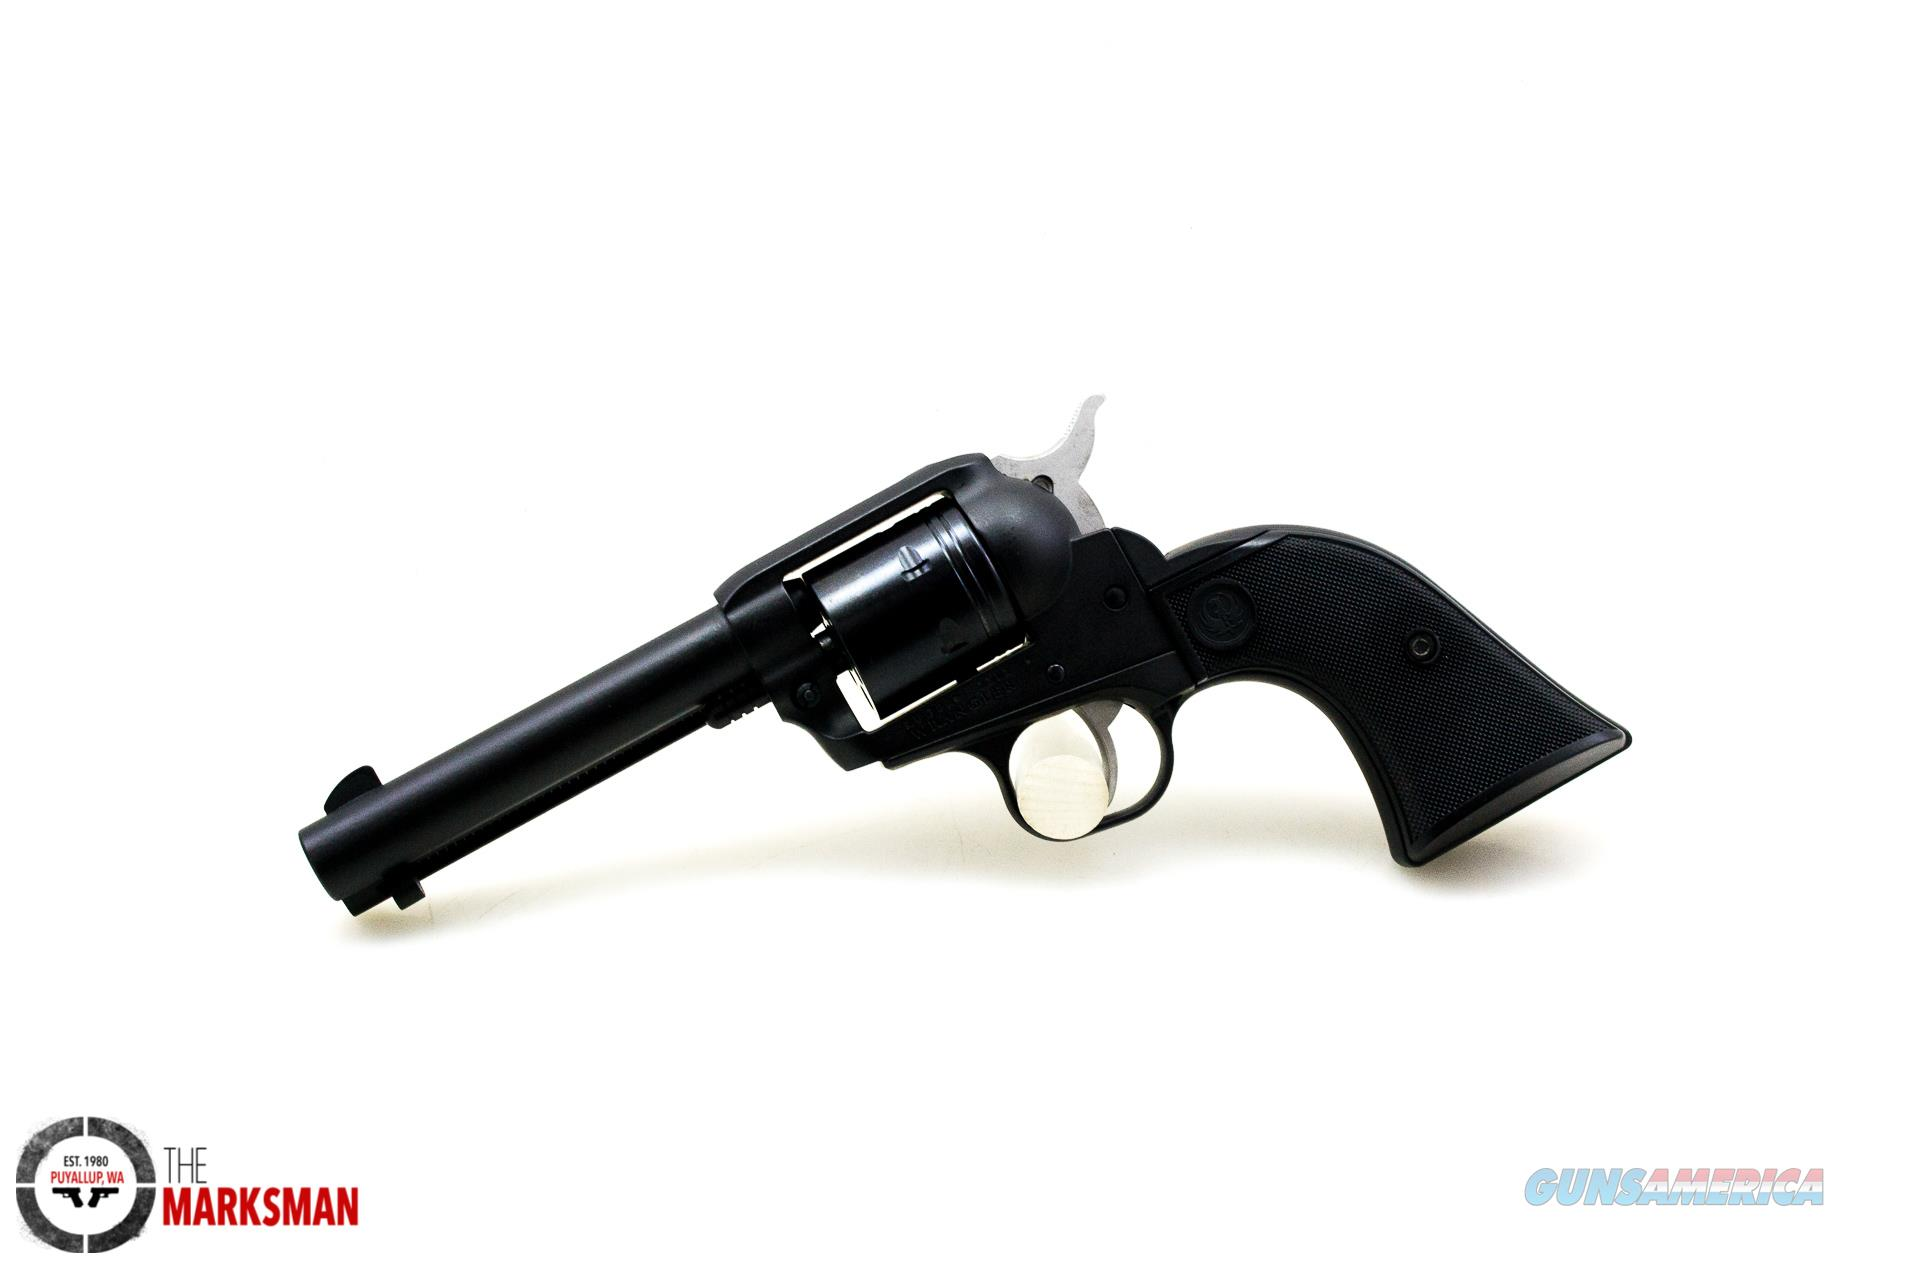 Ruger Wrangler, .22 lr, Black Cerakote NEW 02002  Guns > Pistols > Ruger Single Action Revolvers > Cowboy Action